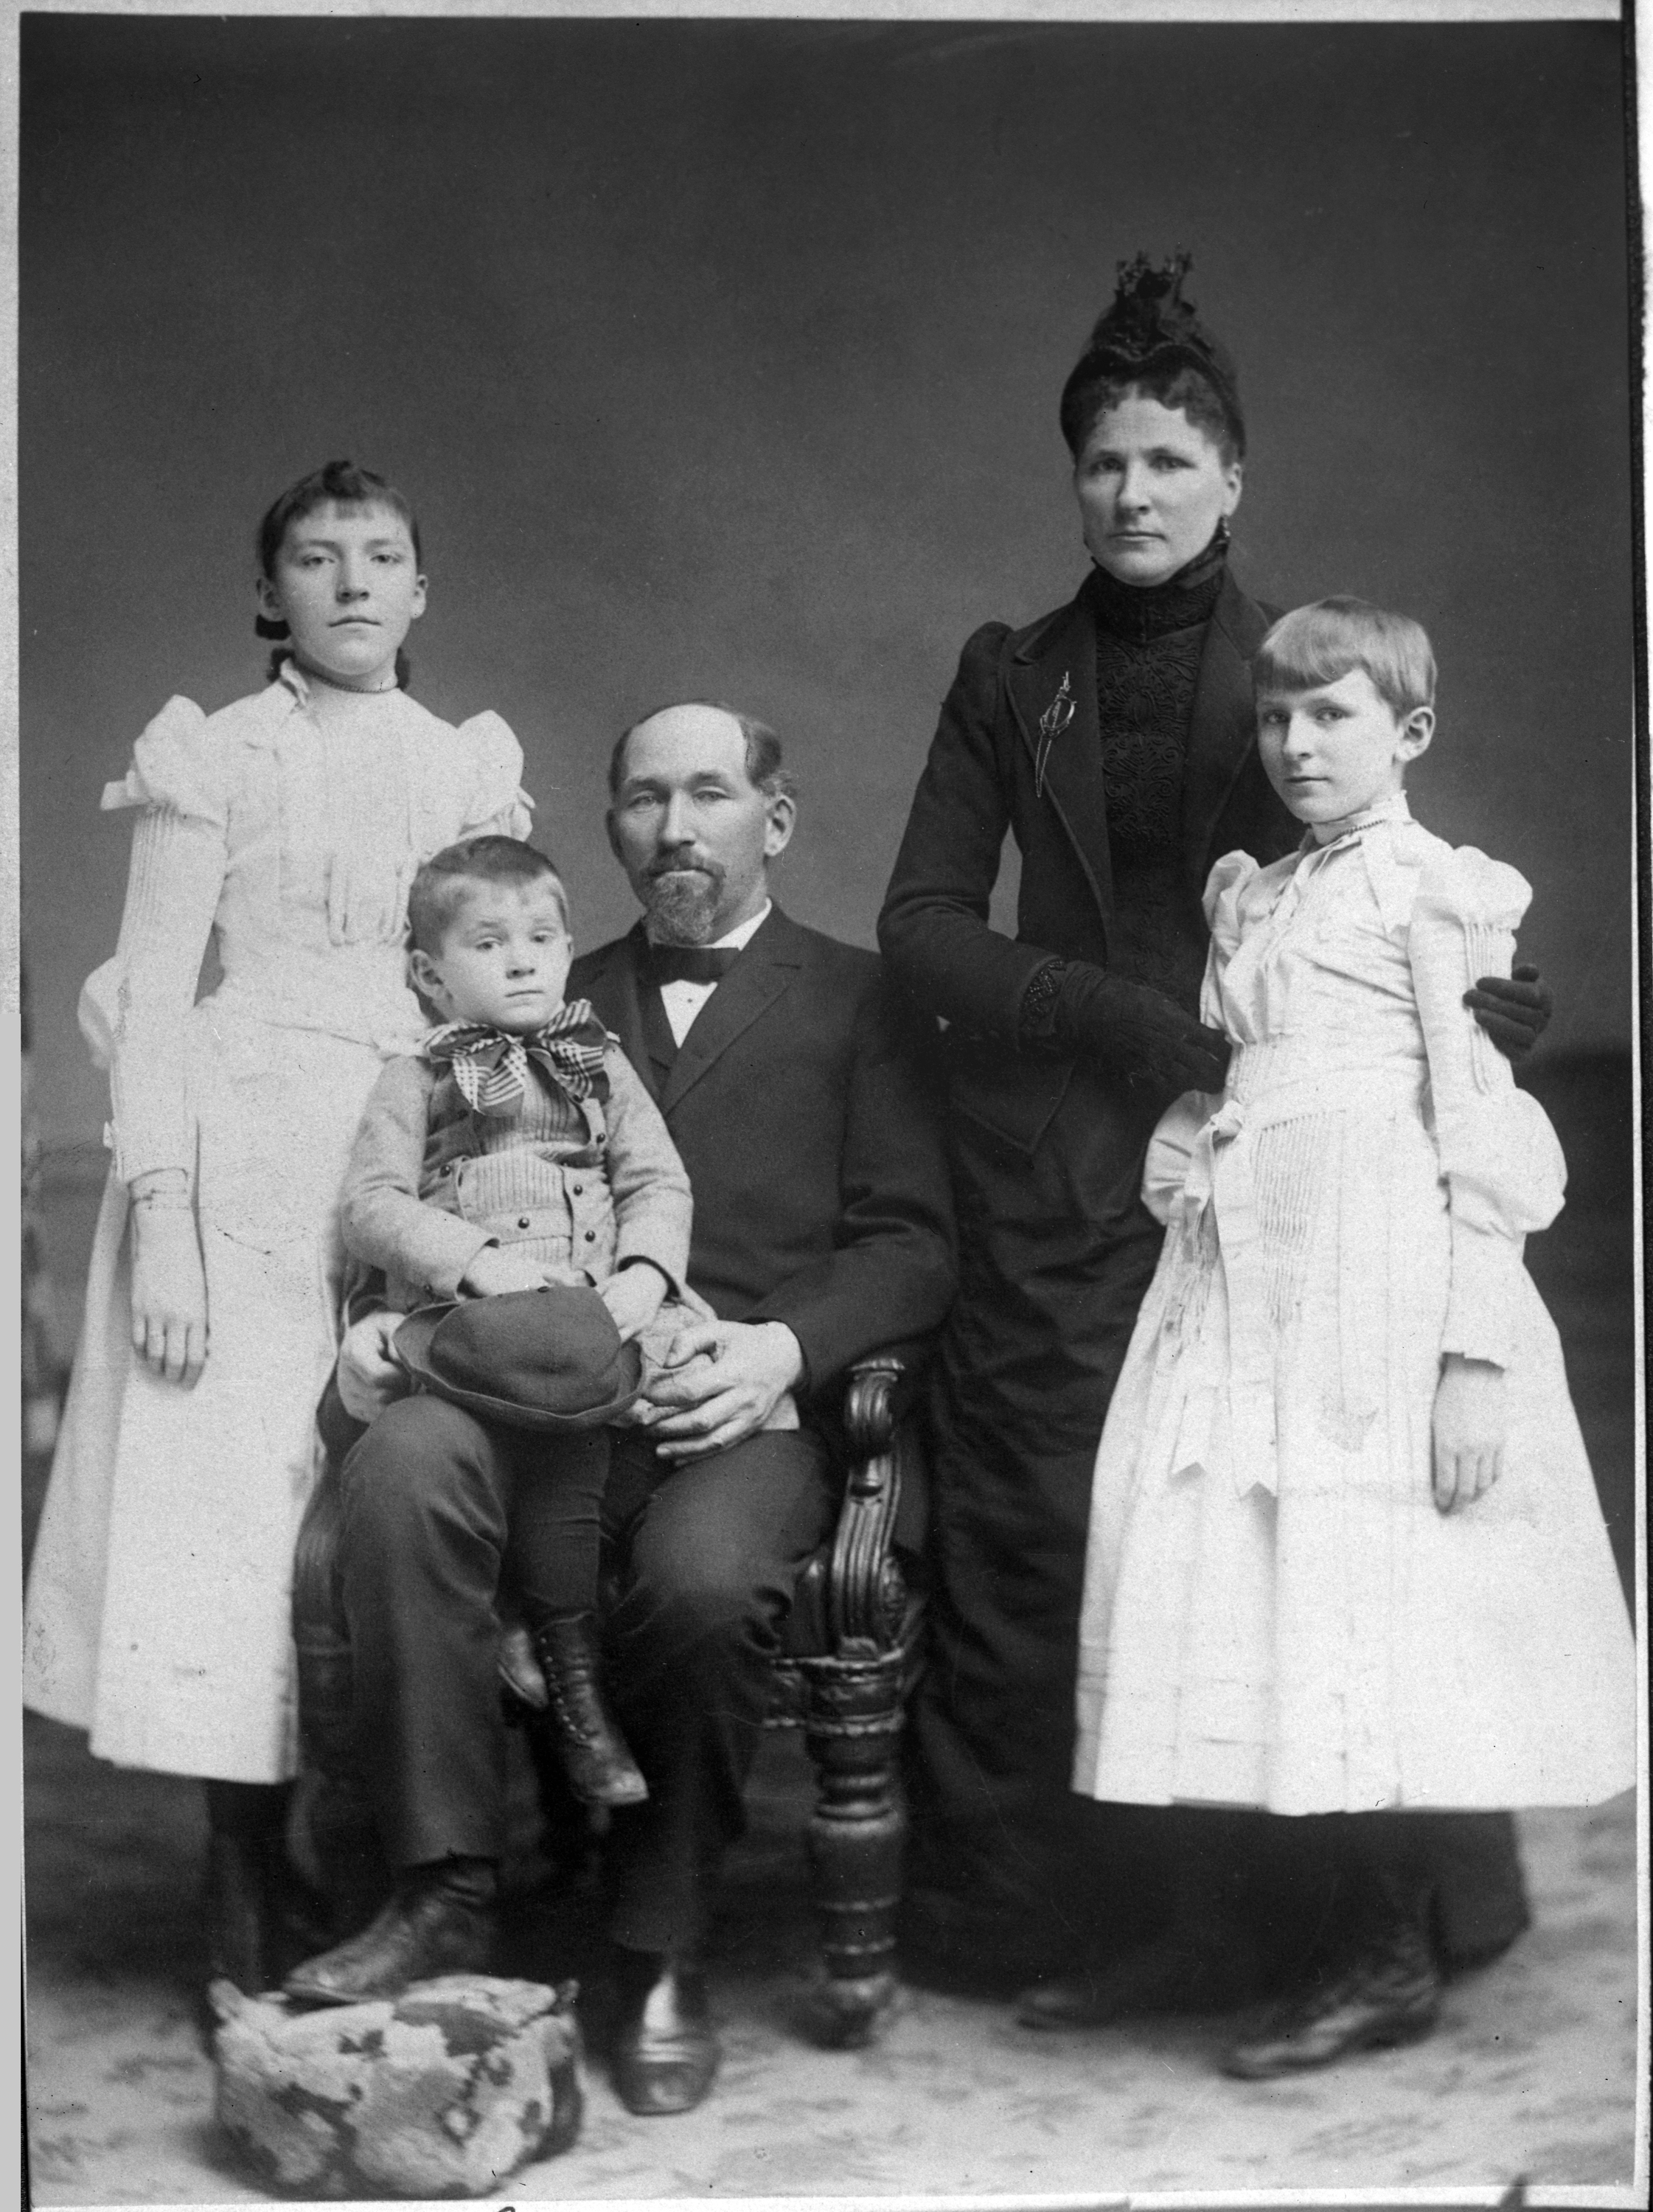 Ada Comstock (far left) with her father, Solomon, her mother, Sarah, her sister, Jessie and her brother, George.